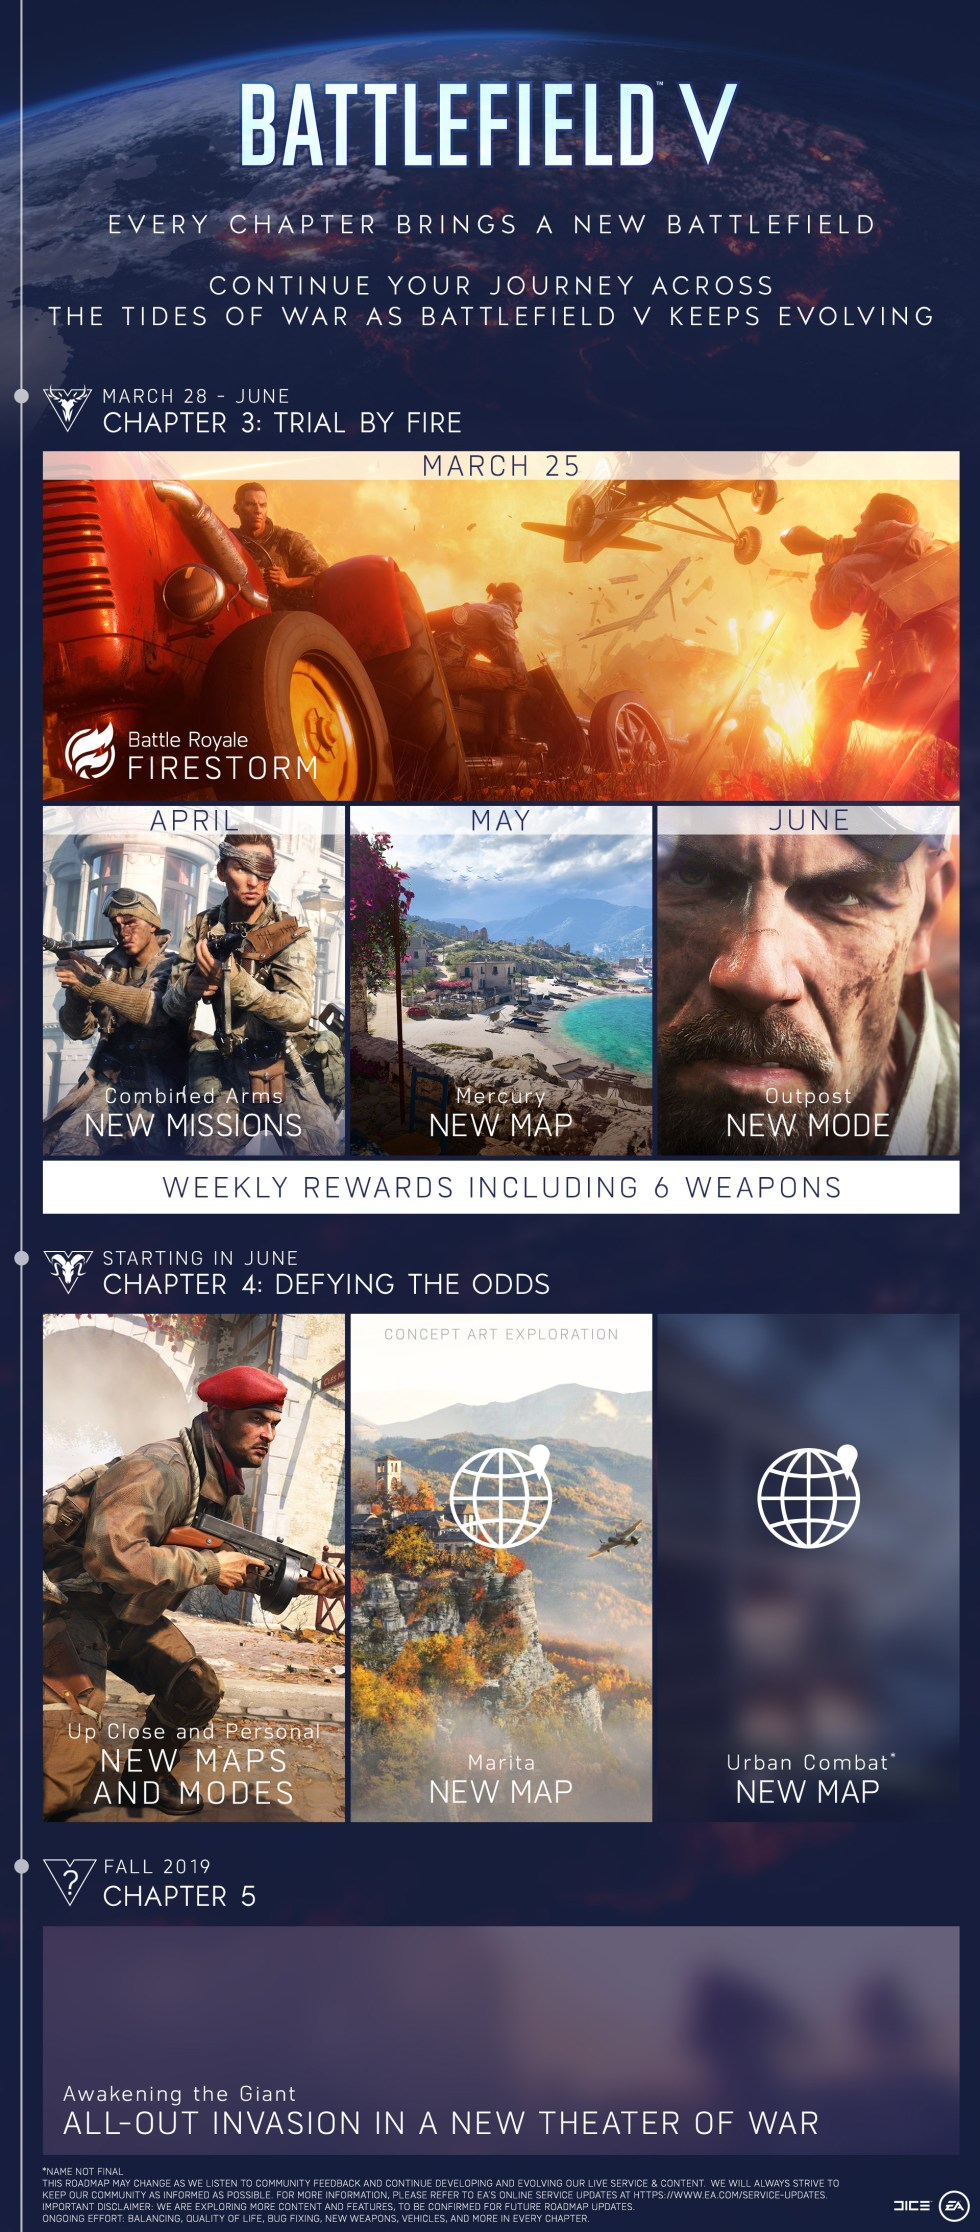 Battlefield V's Roadmap for 2019 includes a lot of content to come